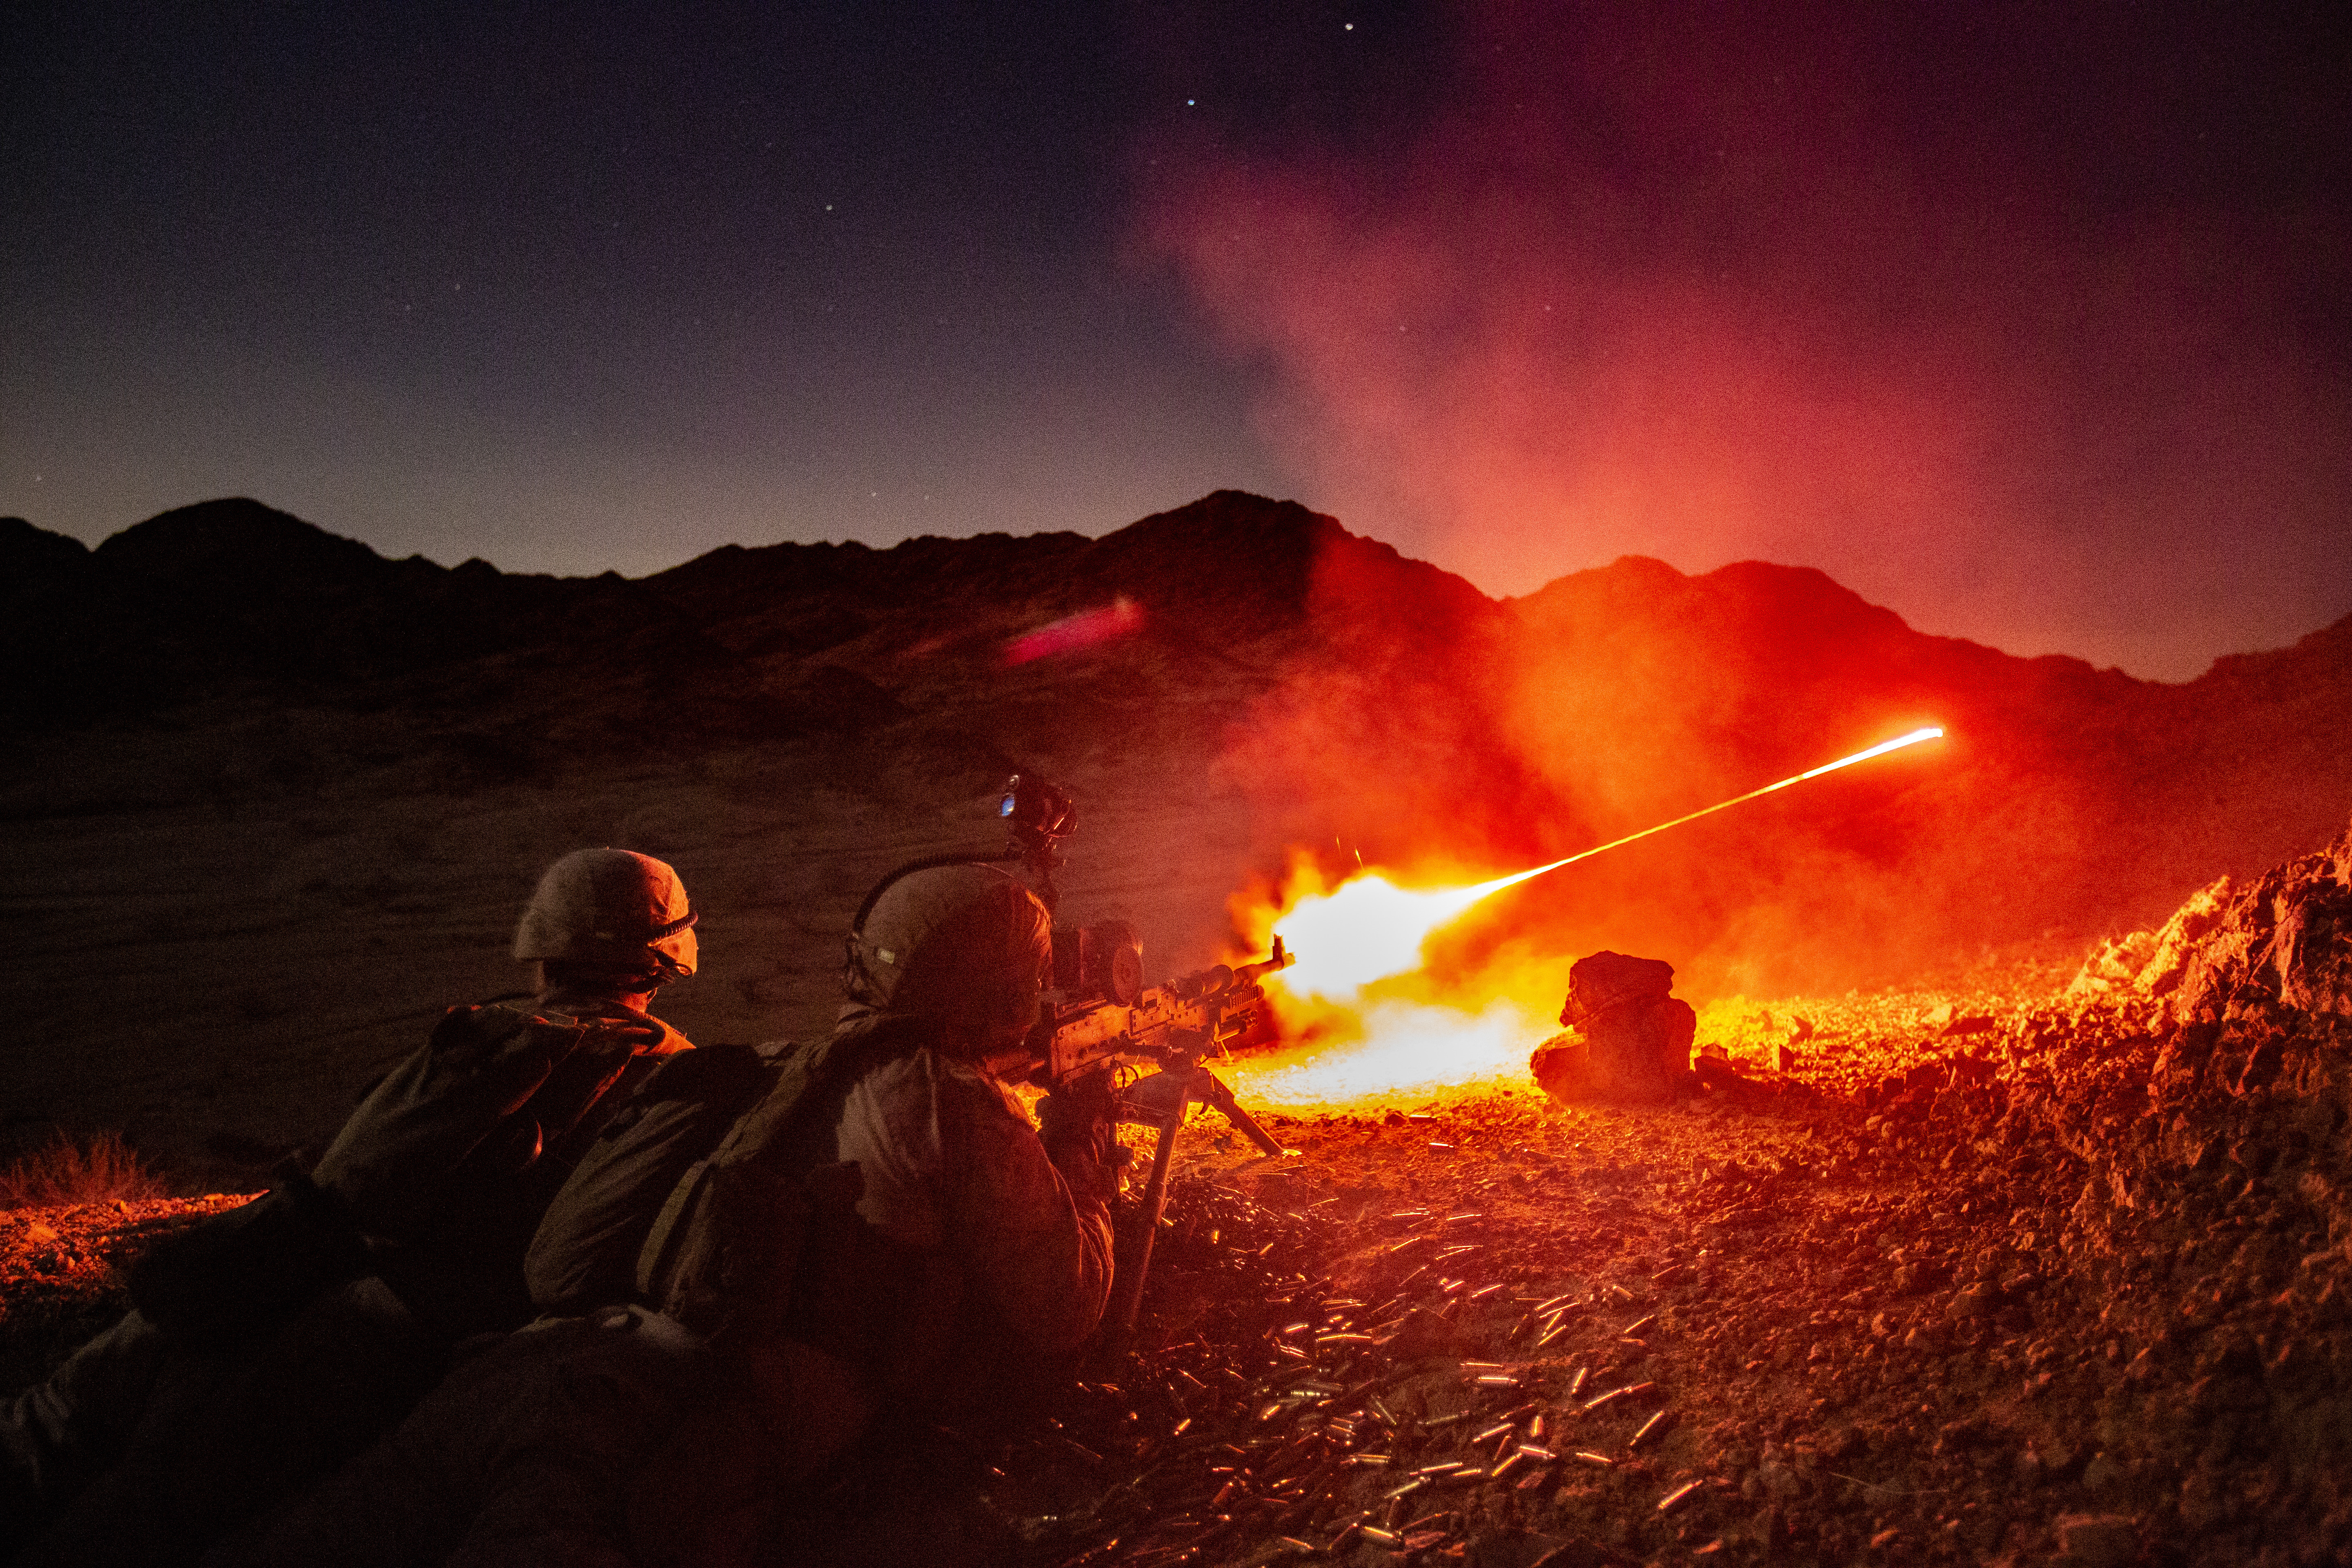 Members of the 24th Marine Expeditionary Unit provide combat support with an M240B medium machine gun while conducting night live-fire platoon assault training at Camp Titin, Jordan, June 21. (1st Lt. Mark Andries/Marine Corps)